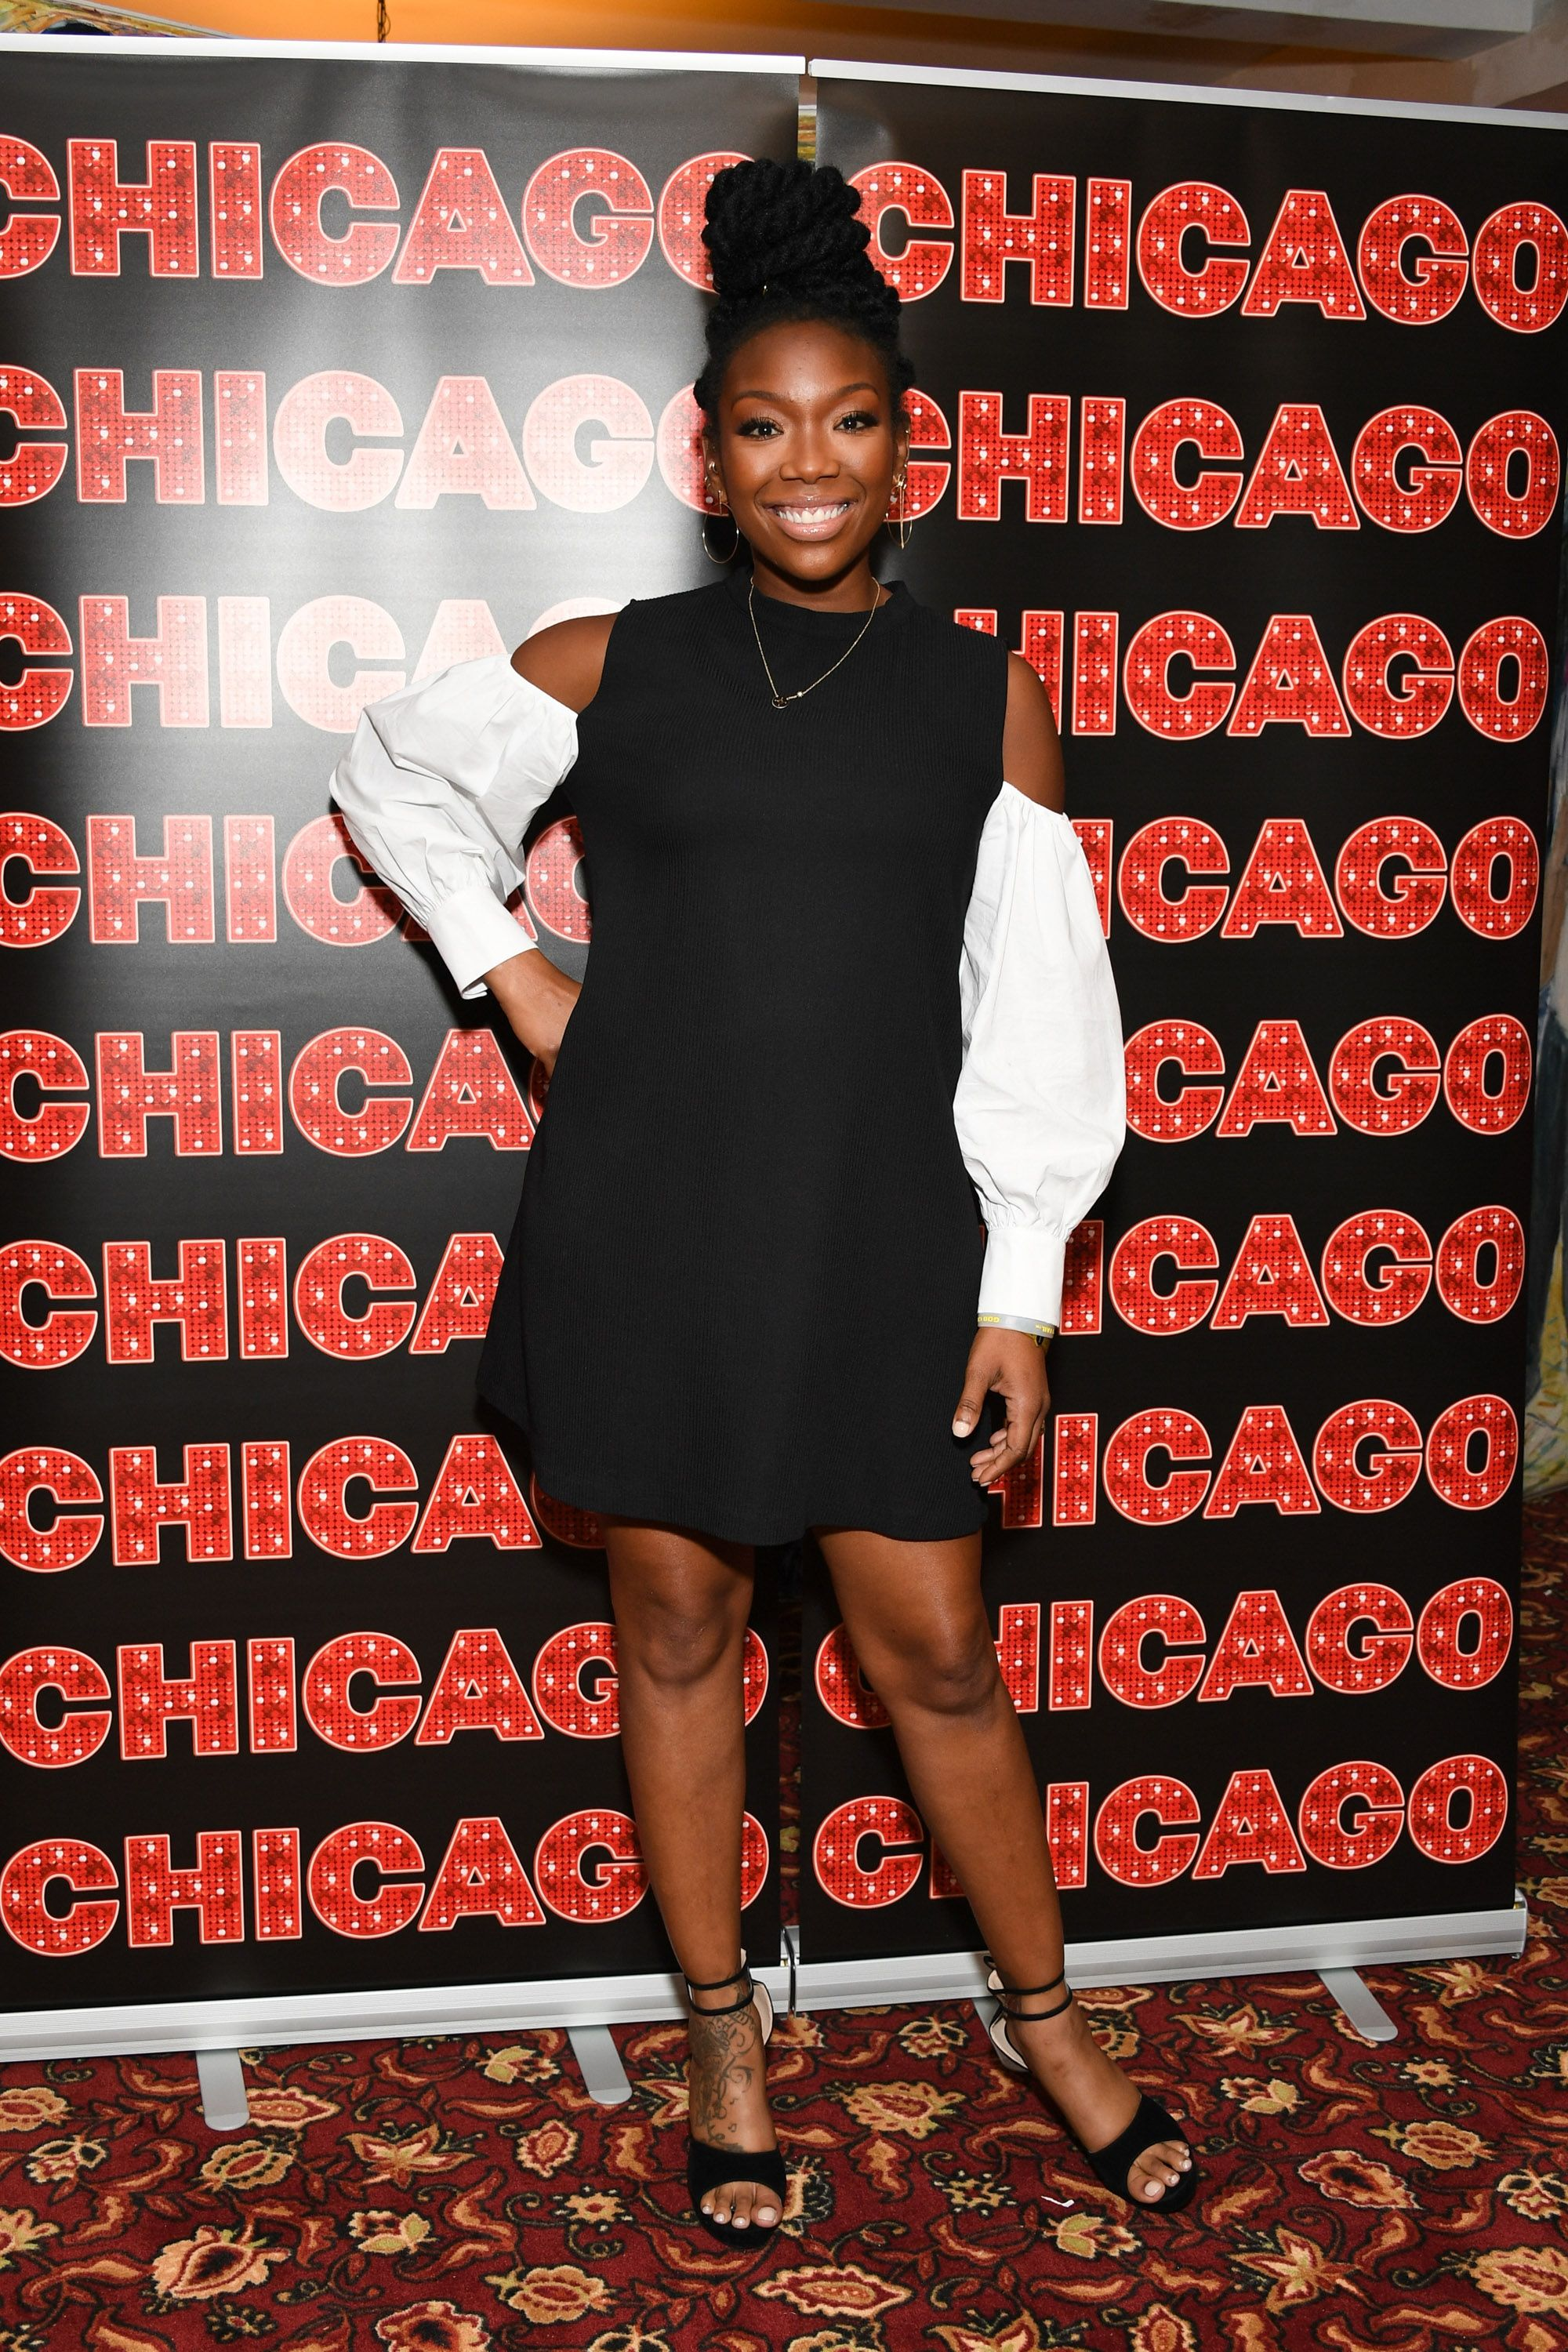 """In New York City on August 16, 2017 Brandy Norwood attends a press event at Sardi's for her return to Broadway's """"Chicago.  